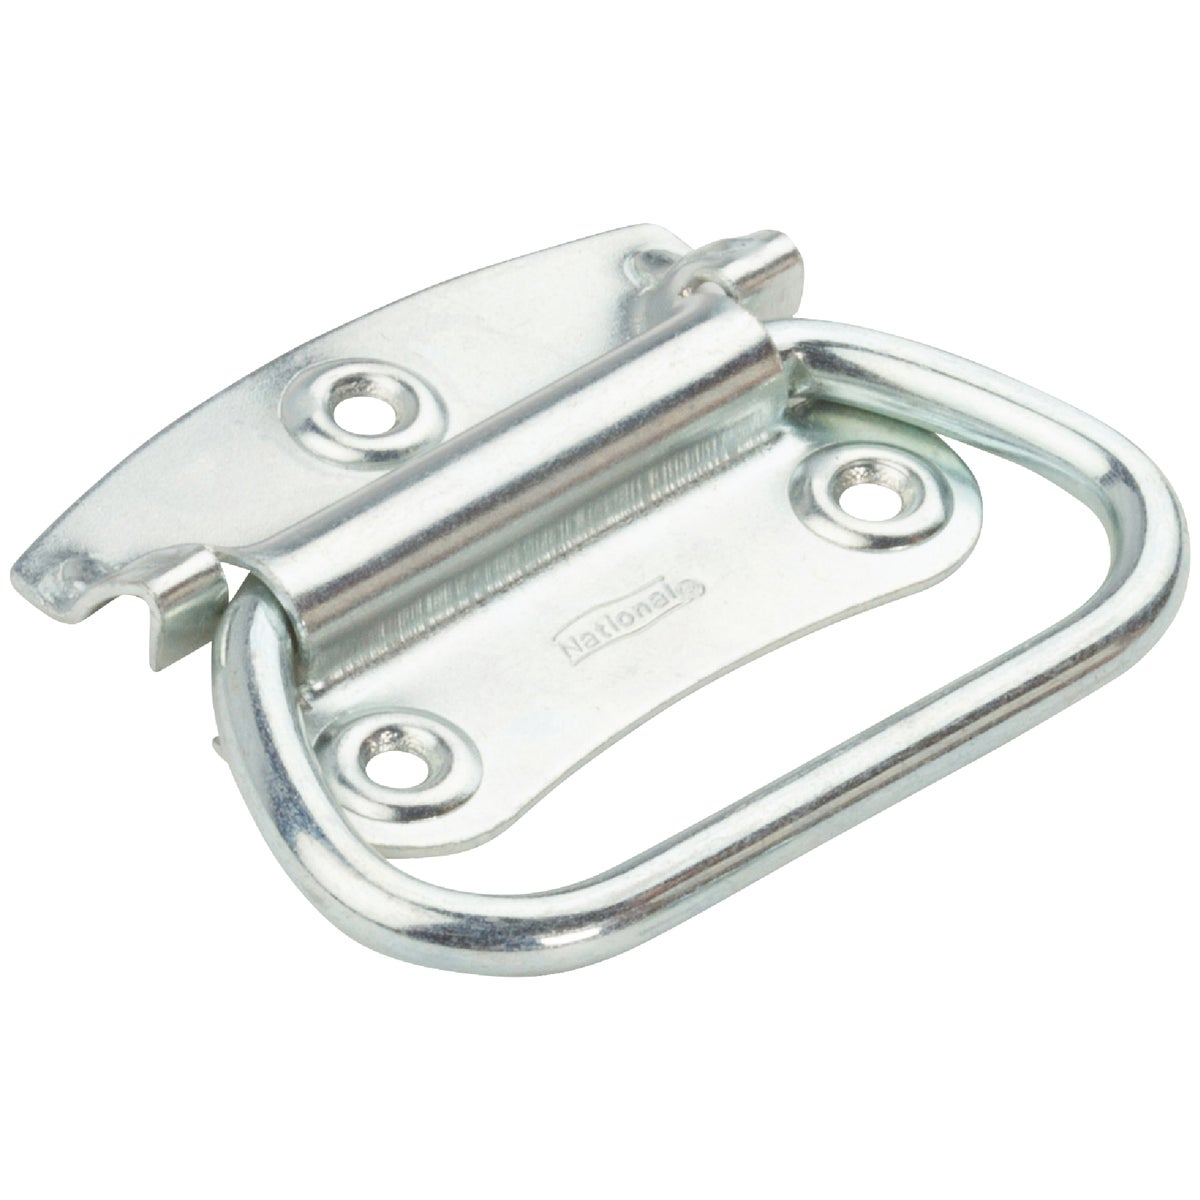 "2-3/4"" CHEST HANDLE - N203760 by National Mfg Co"